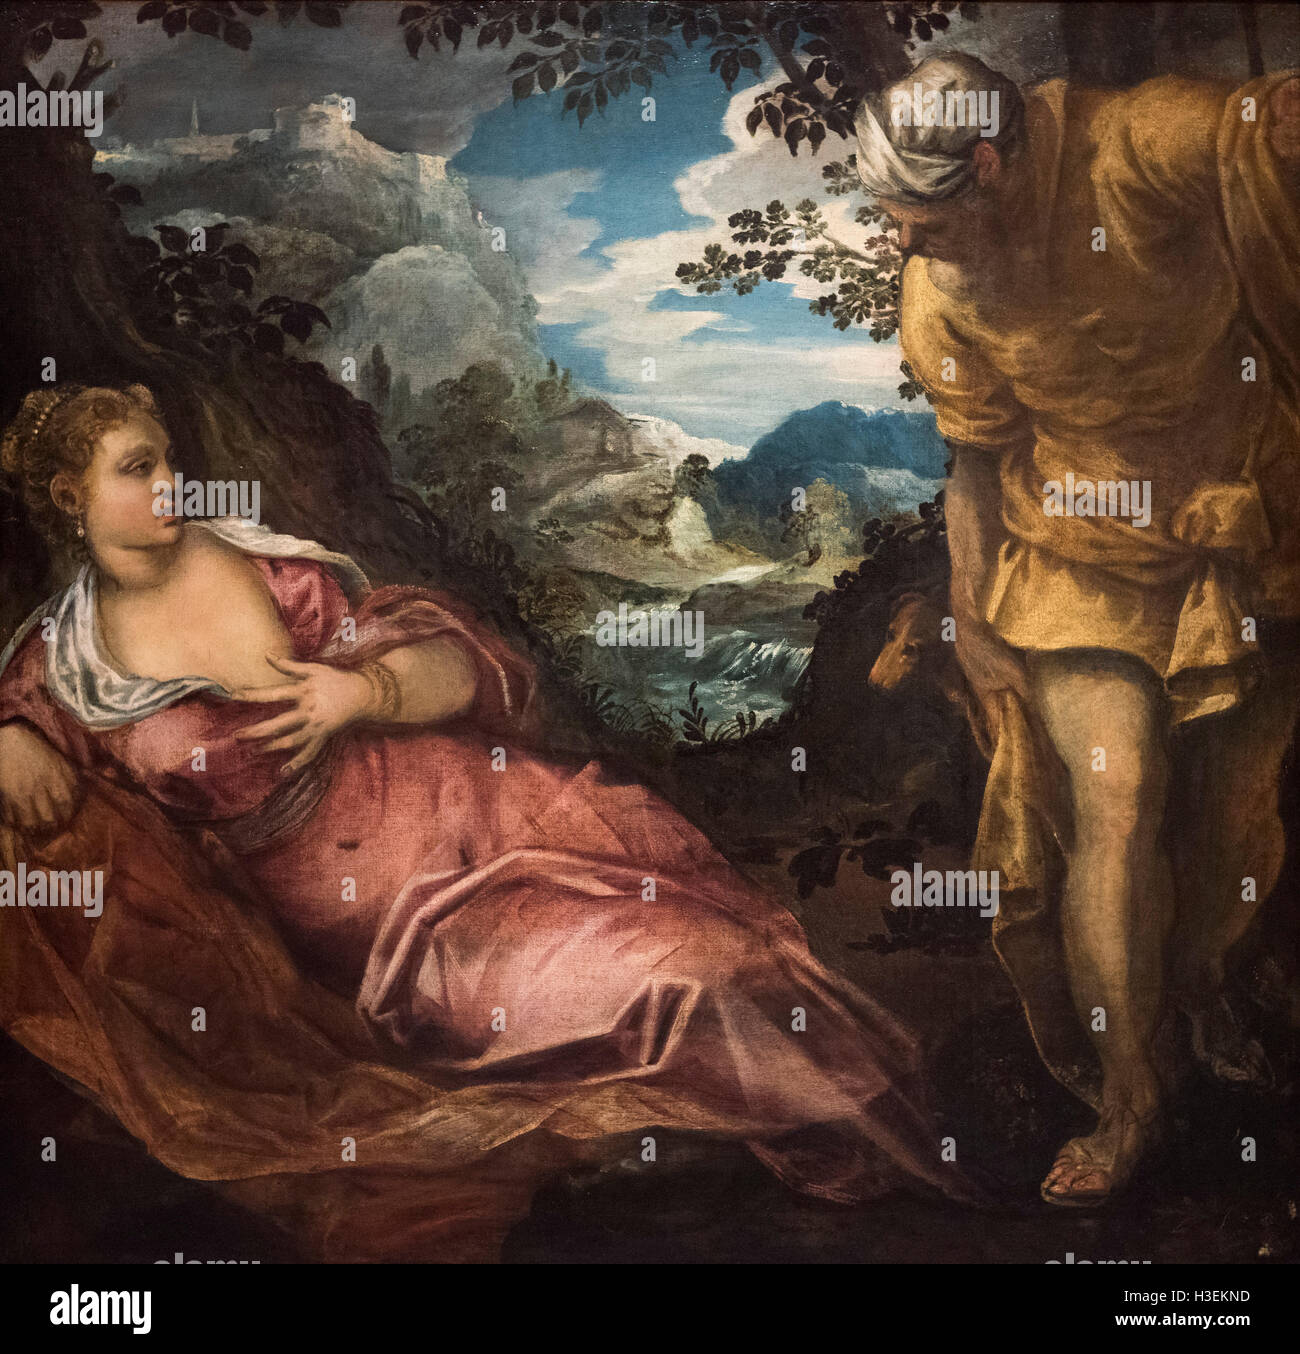 Tintoretto - Jacopo Robusti (1518-1594),  The Meeting of Tamar and Judah, ca. 1555-1558. Stock Photo